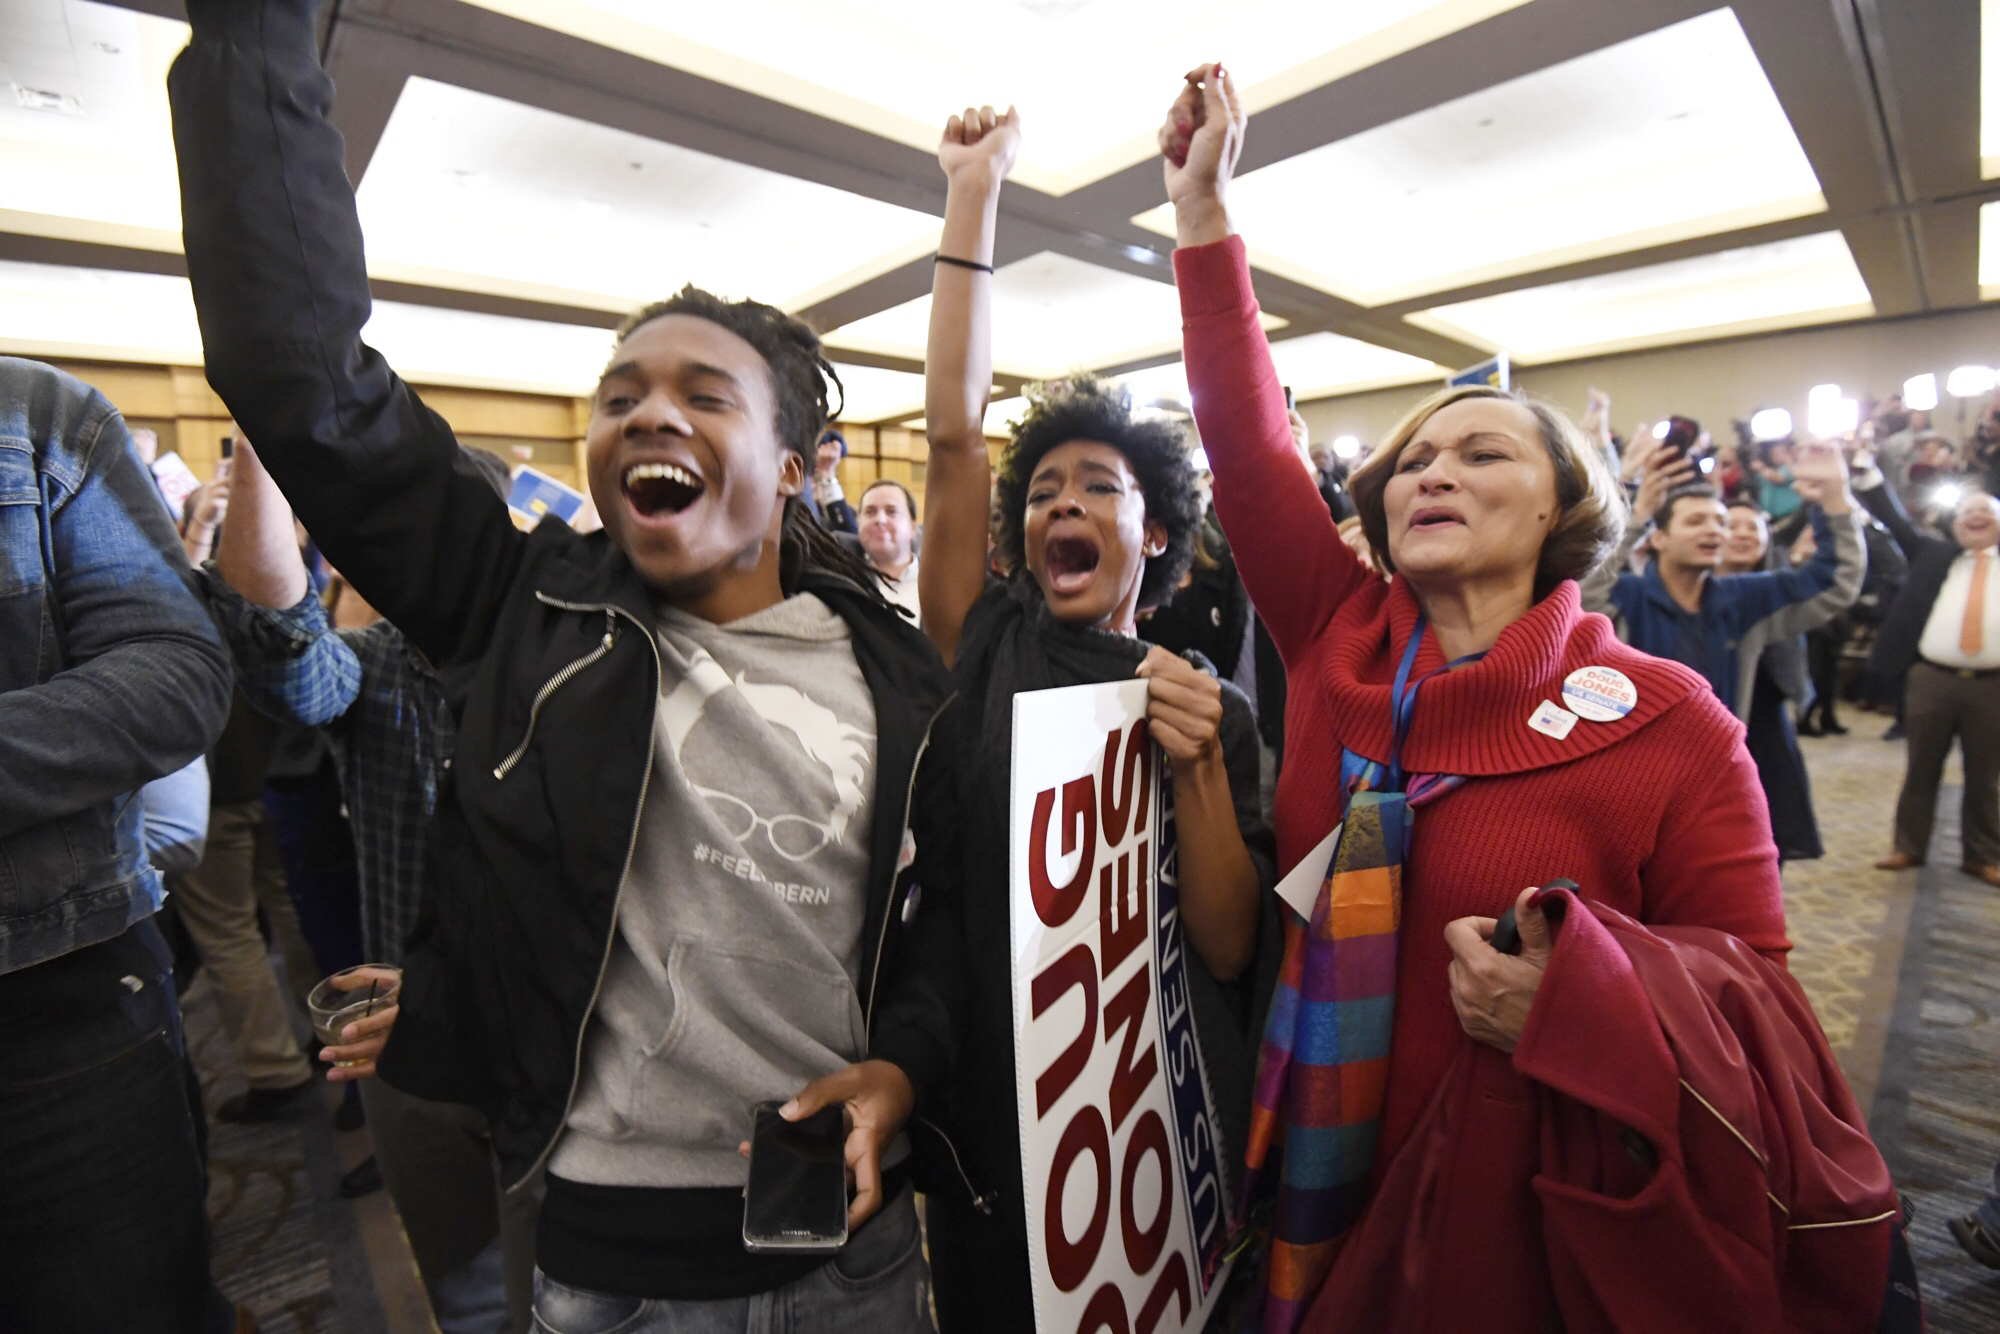 Senator-elect Doug Jones supporters cheer at the election night party in Birmingham on Tuesday evening. (Bill Clark/CQ Roll Call)